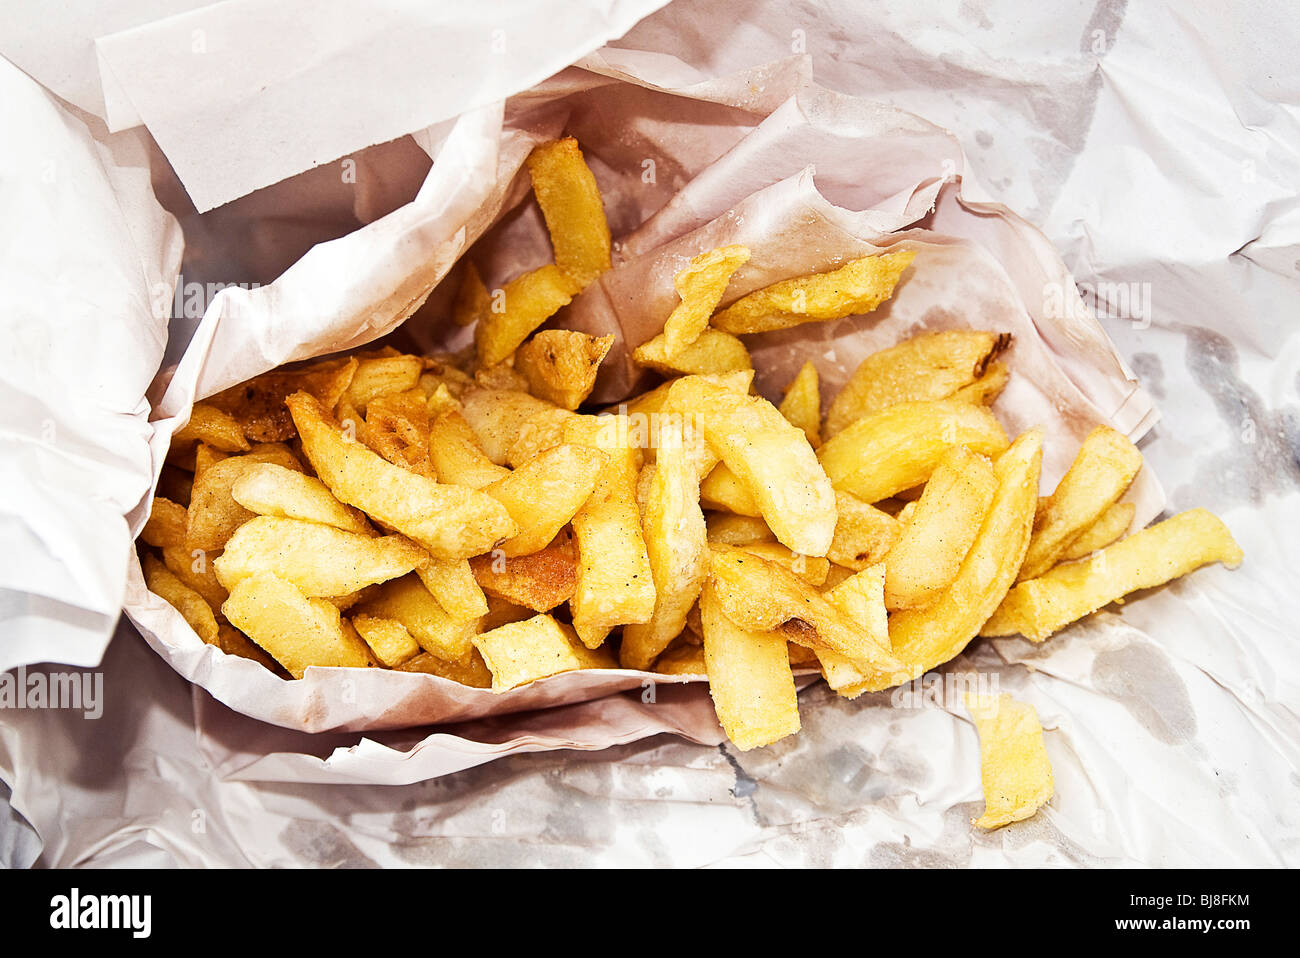 Bag of chips - Stock Image